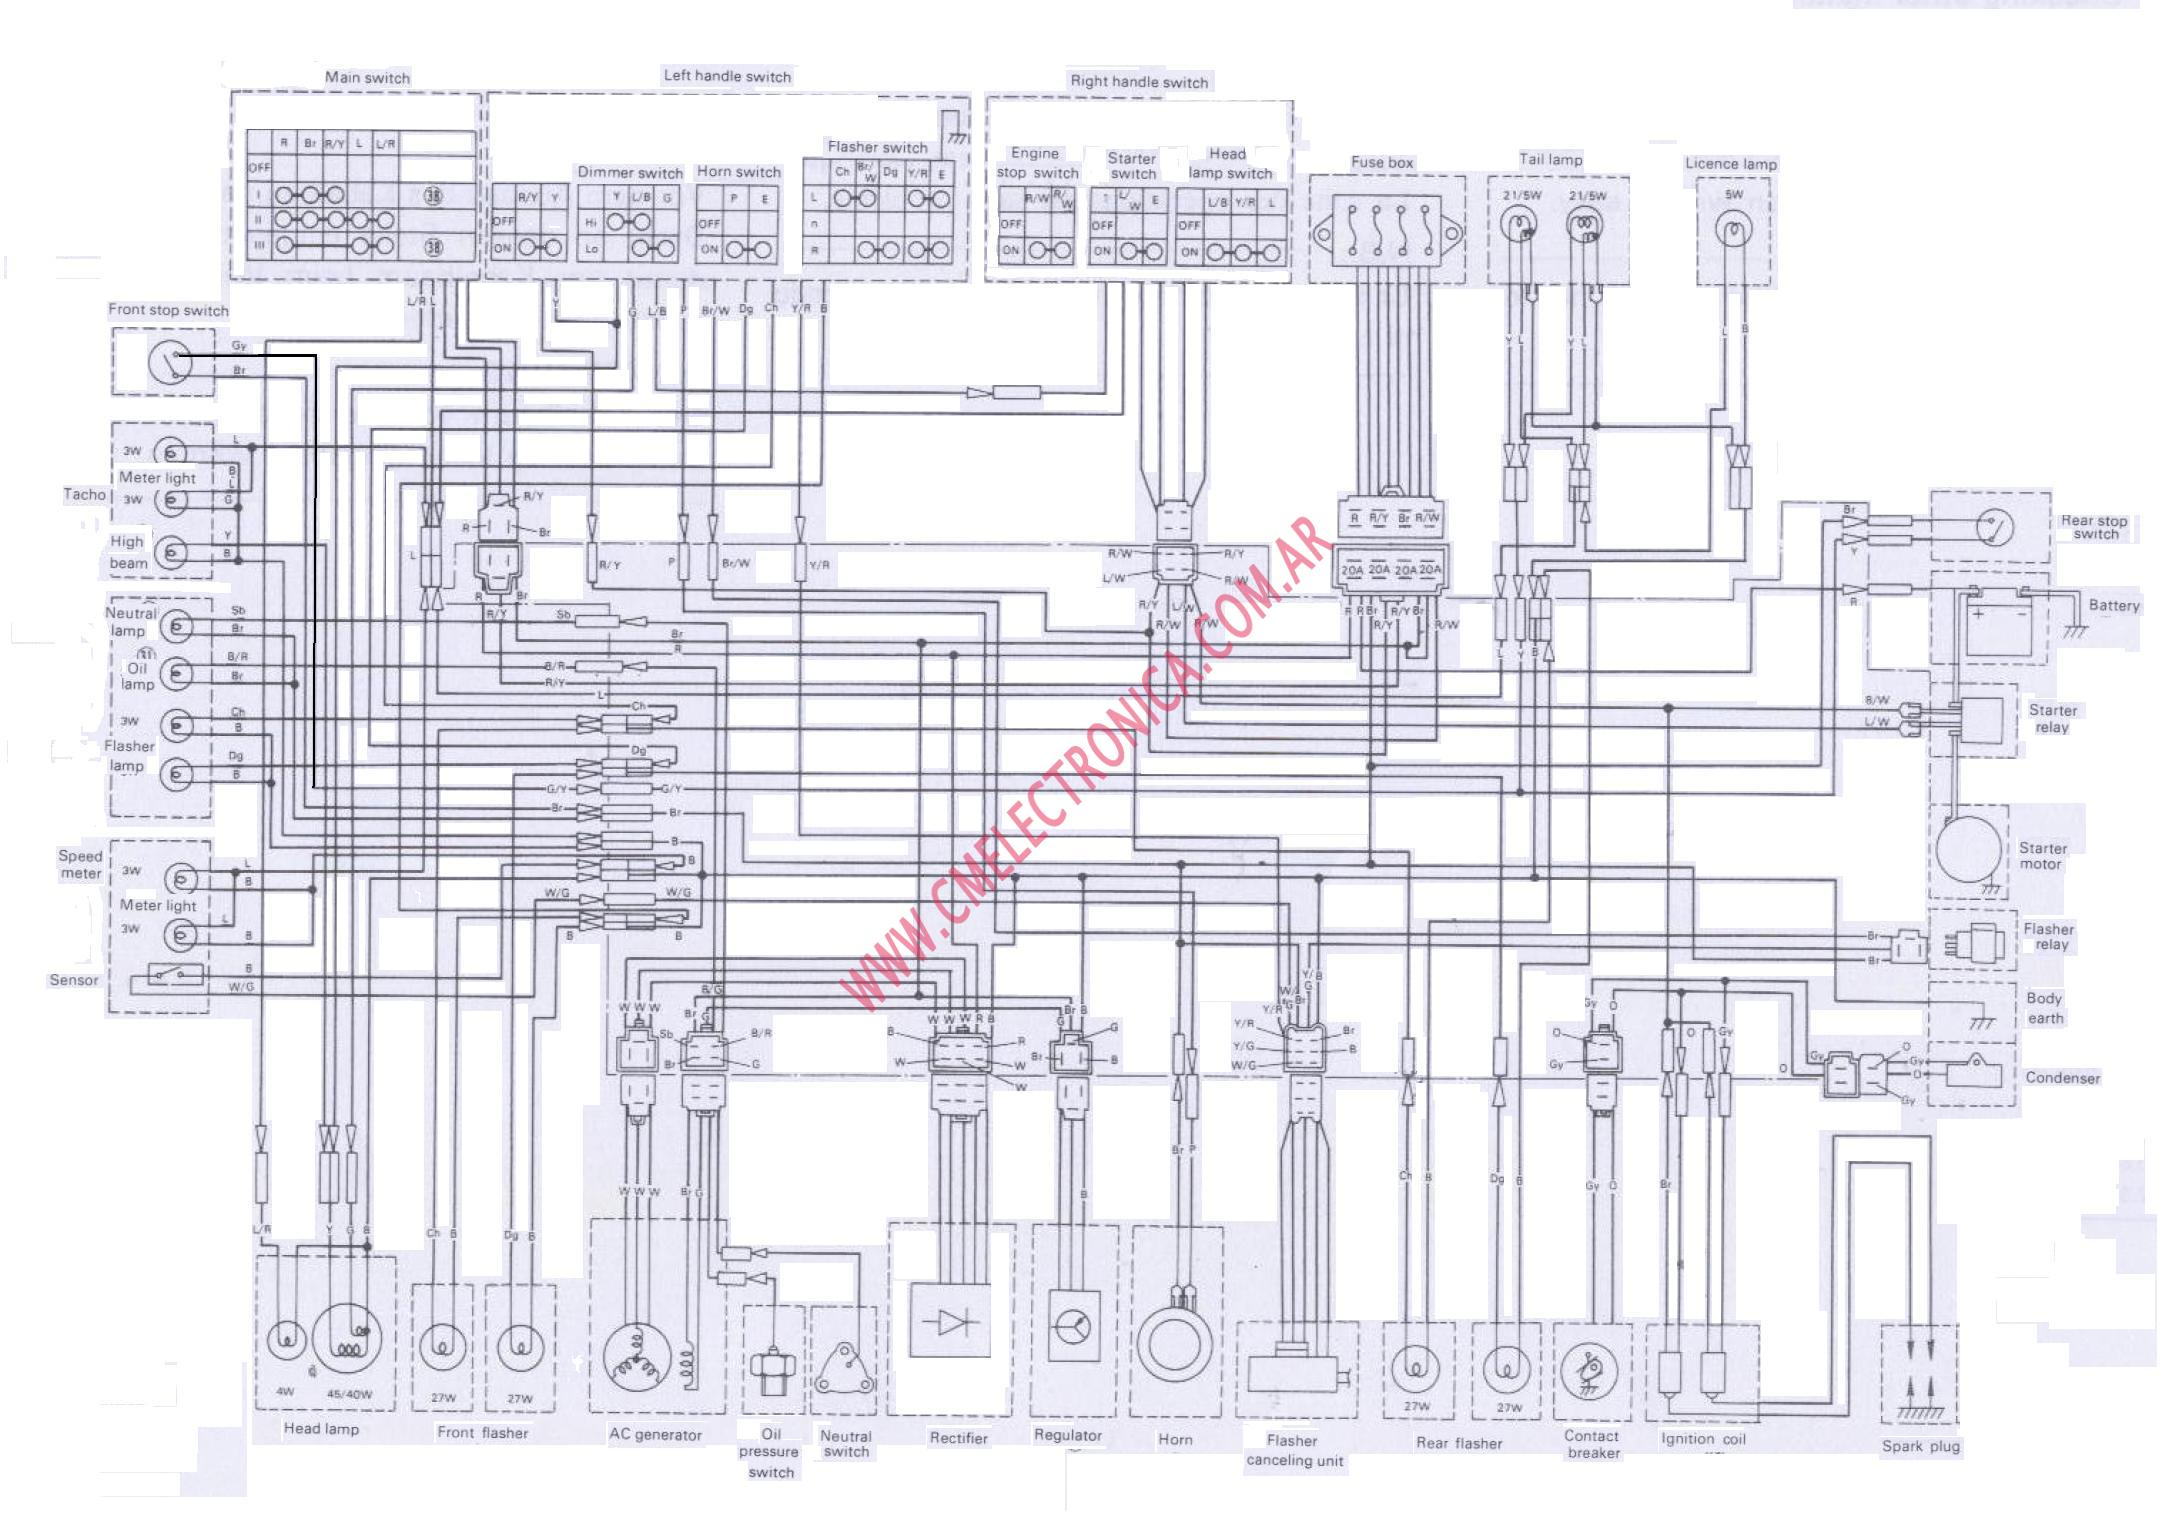 yamaha xs tx500_63 79 diagrams 13591047 xv1000 wiring diagram viragotechforum view carrier xarios 600 wiring diagram at edmiracle.co